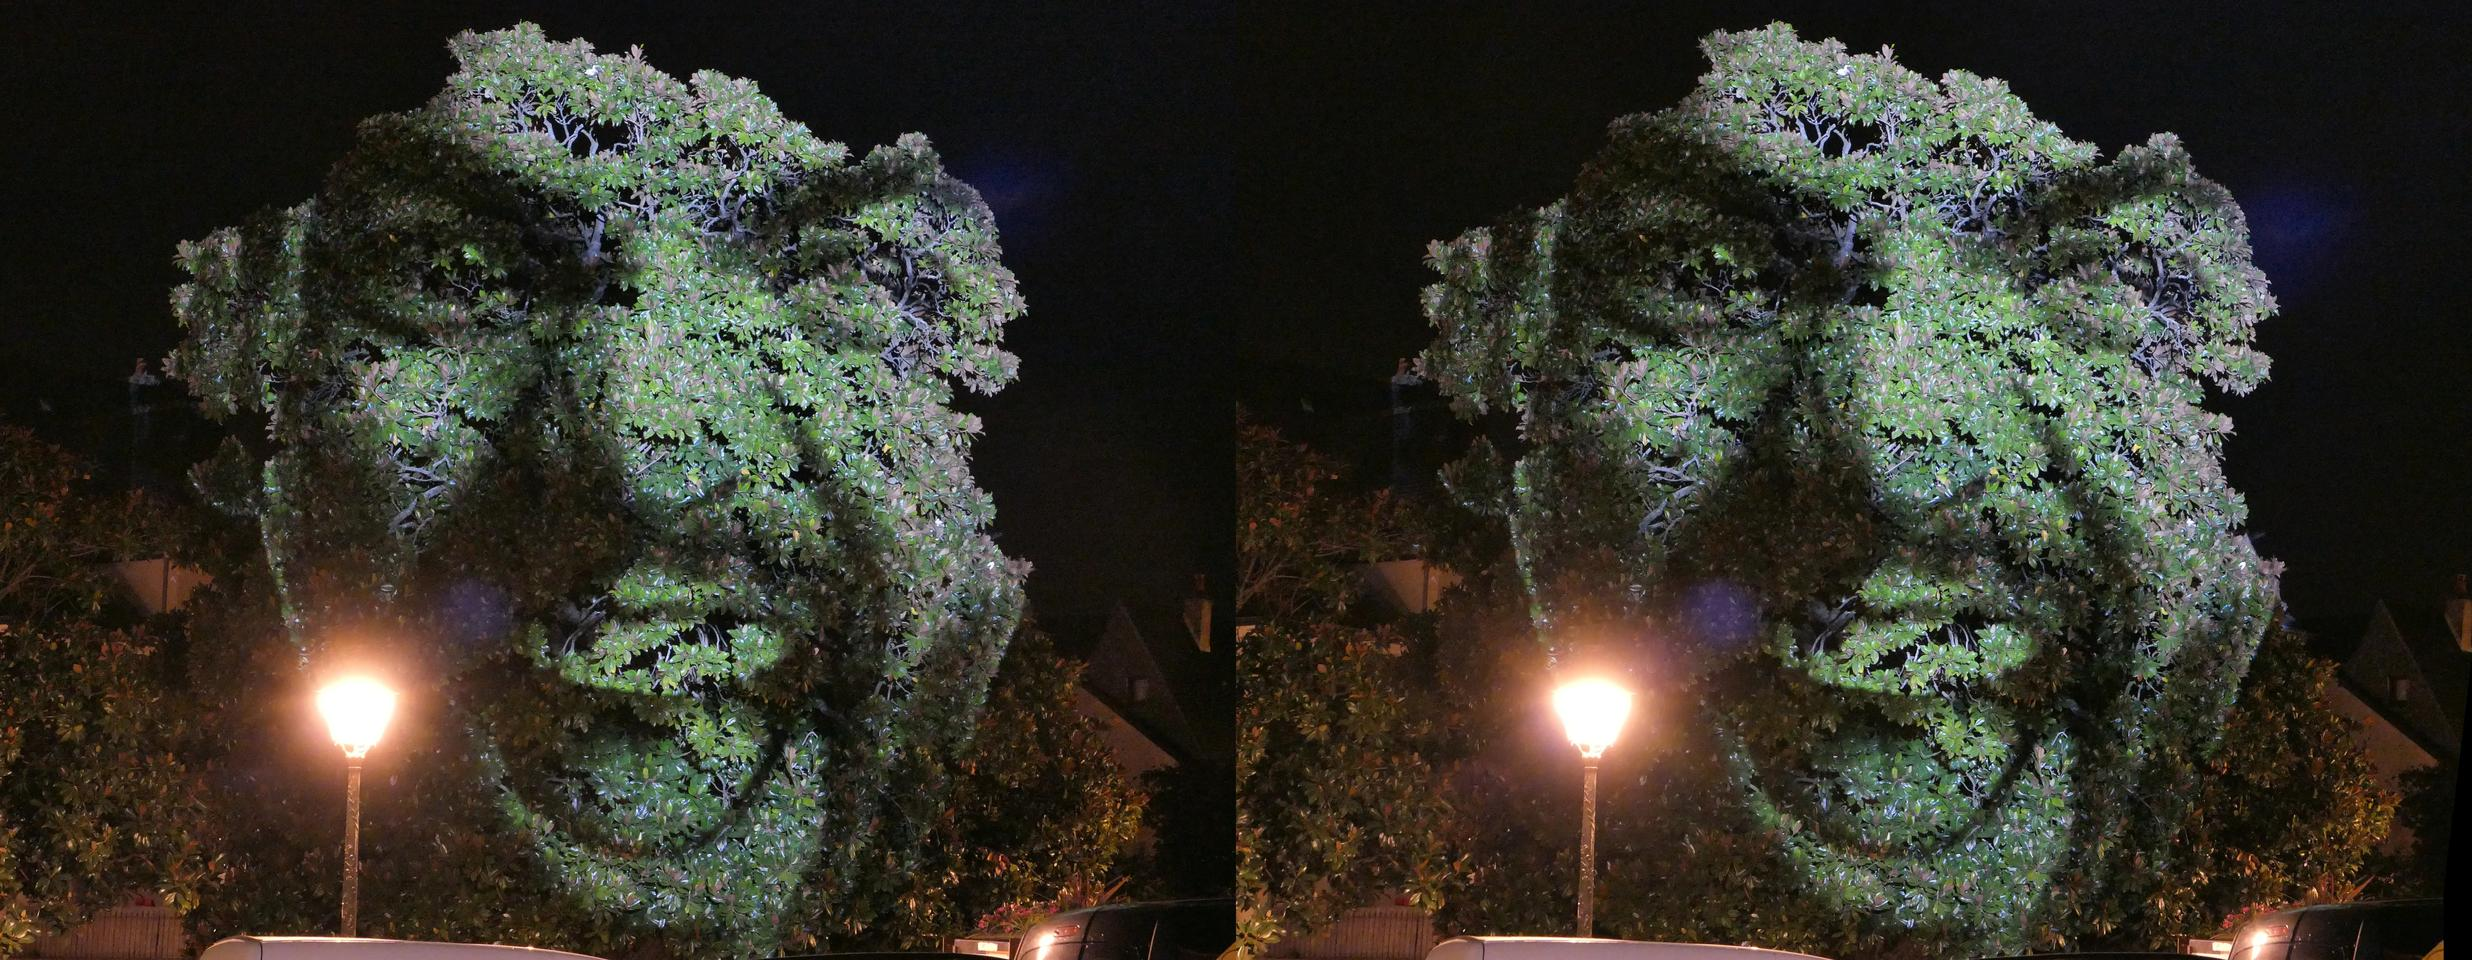 Lightpainted tree face